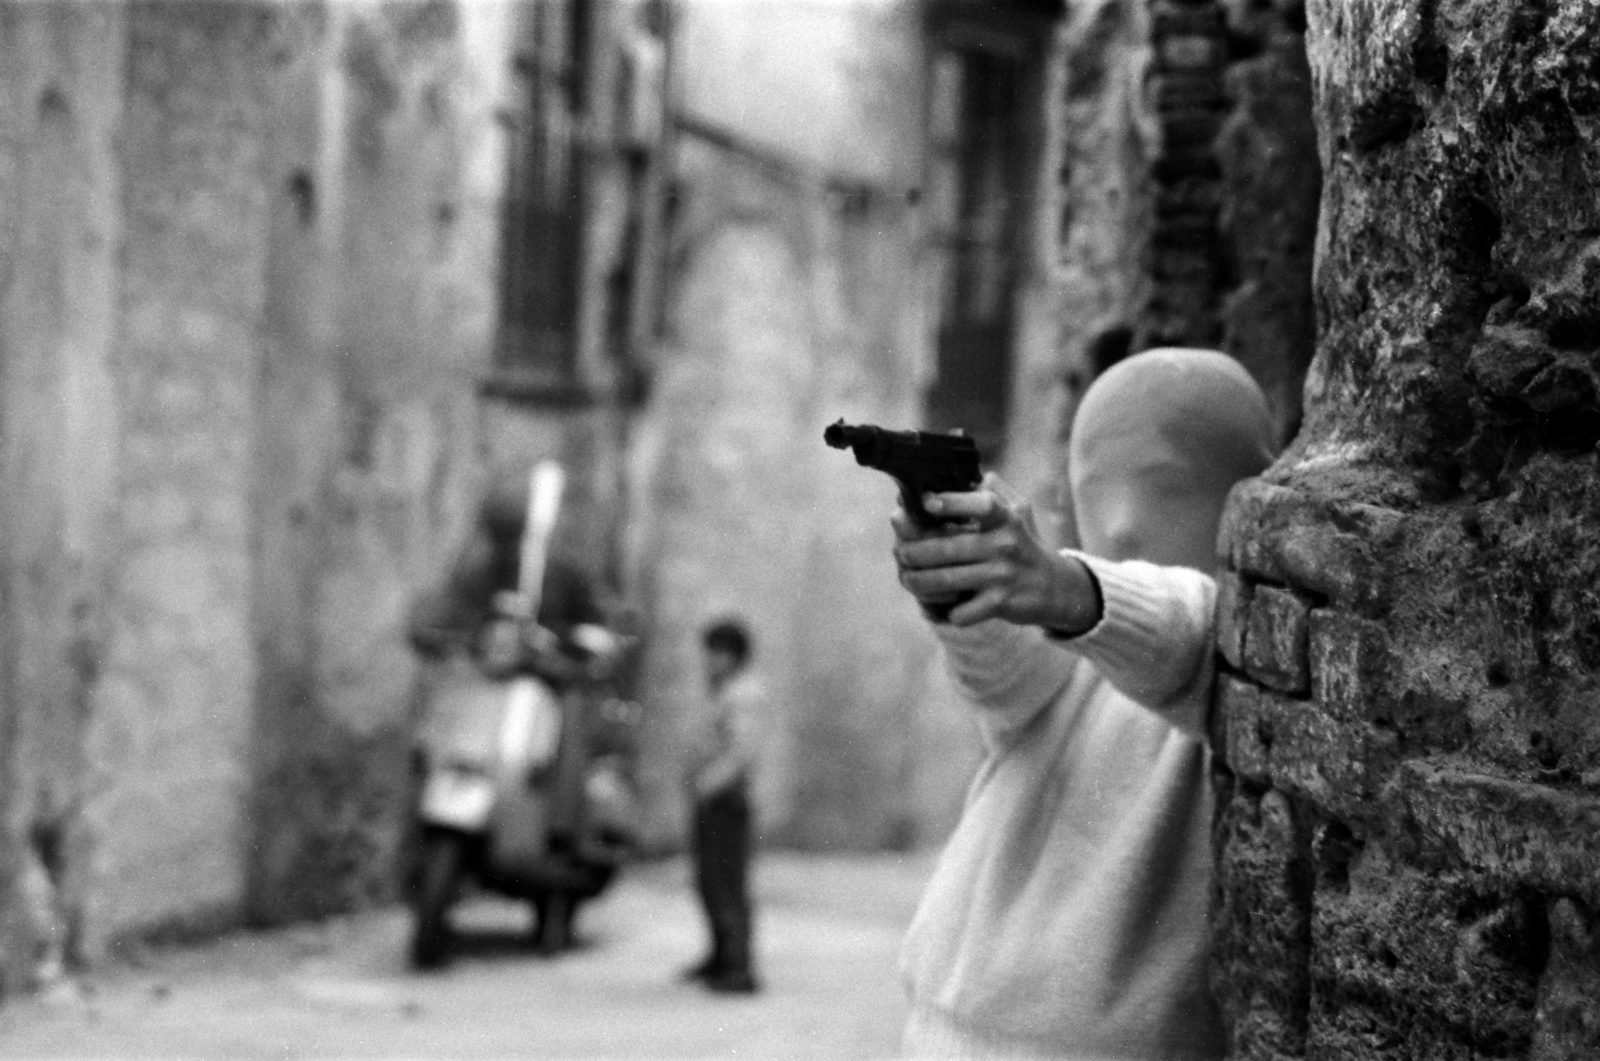 "(EN) Film subject Letizia Battaglia's photo Palermo, 1982. Vicino alla Chiesa di Santa Chiara. Il gioco del killer. (""Palermo, 1982. Near the Church of Santa Chiara. The game of the killer."") in Shooting the Mafia, directed by Kim Longinotto. Courtesy of Lunar Pictures."